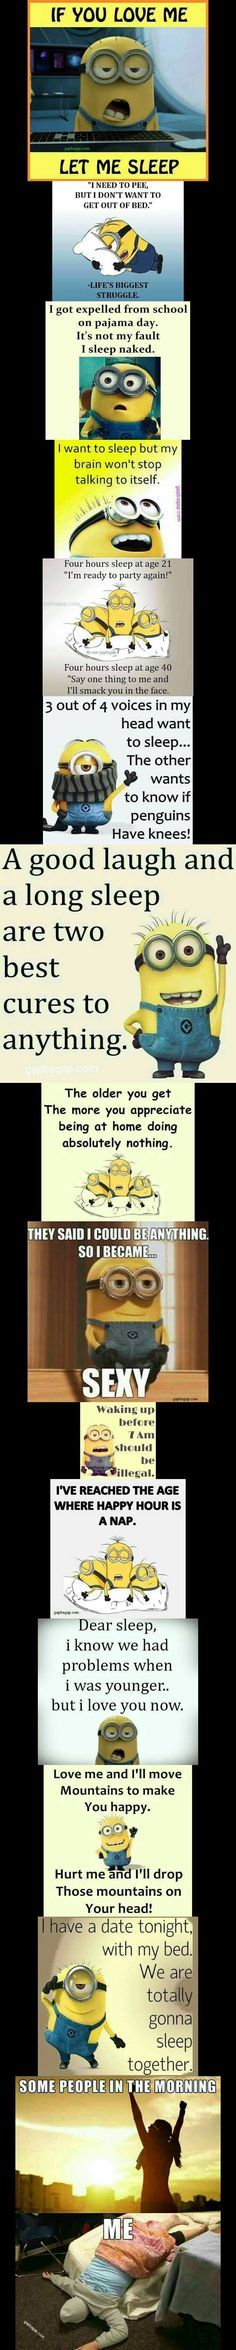 "Top 15 Funny Quotes About Sleeps By The <a class=""pintag"" href=""/explore/Minions/"" title=""#Minions explore Pinterest"">#Minions</a>"